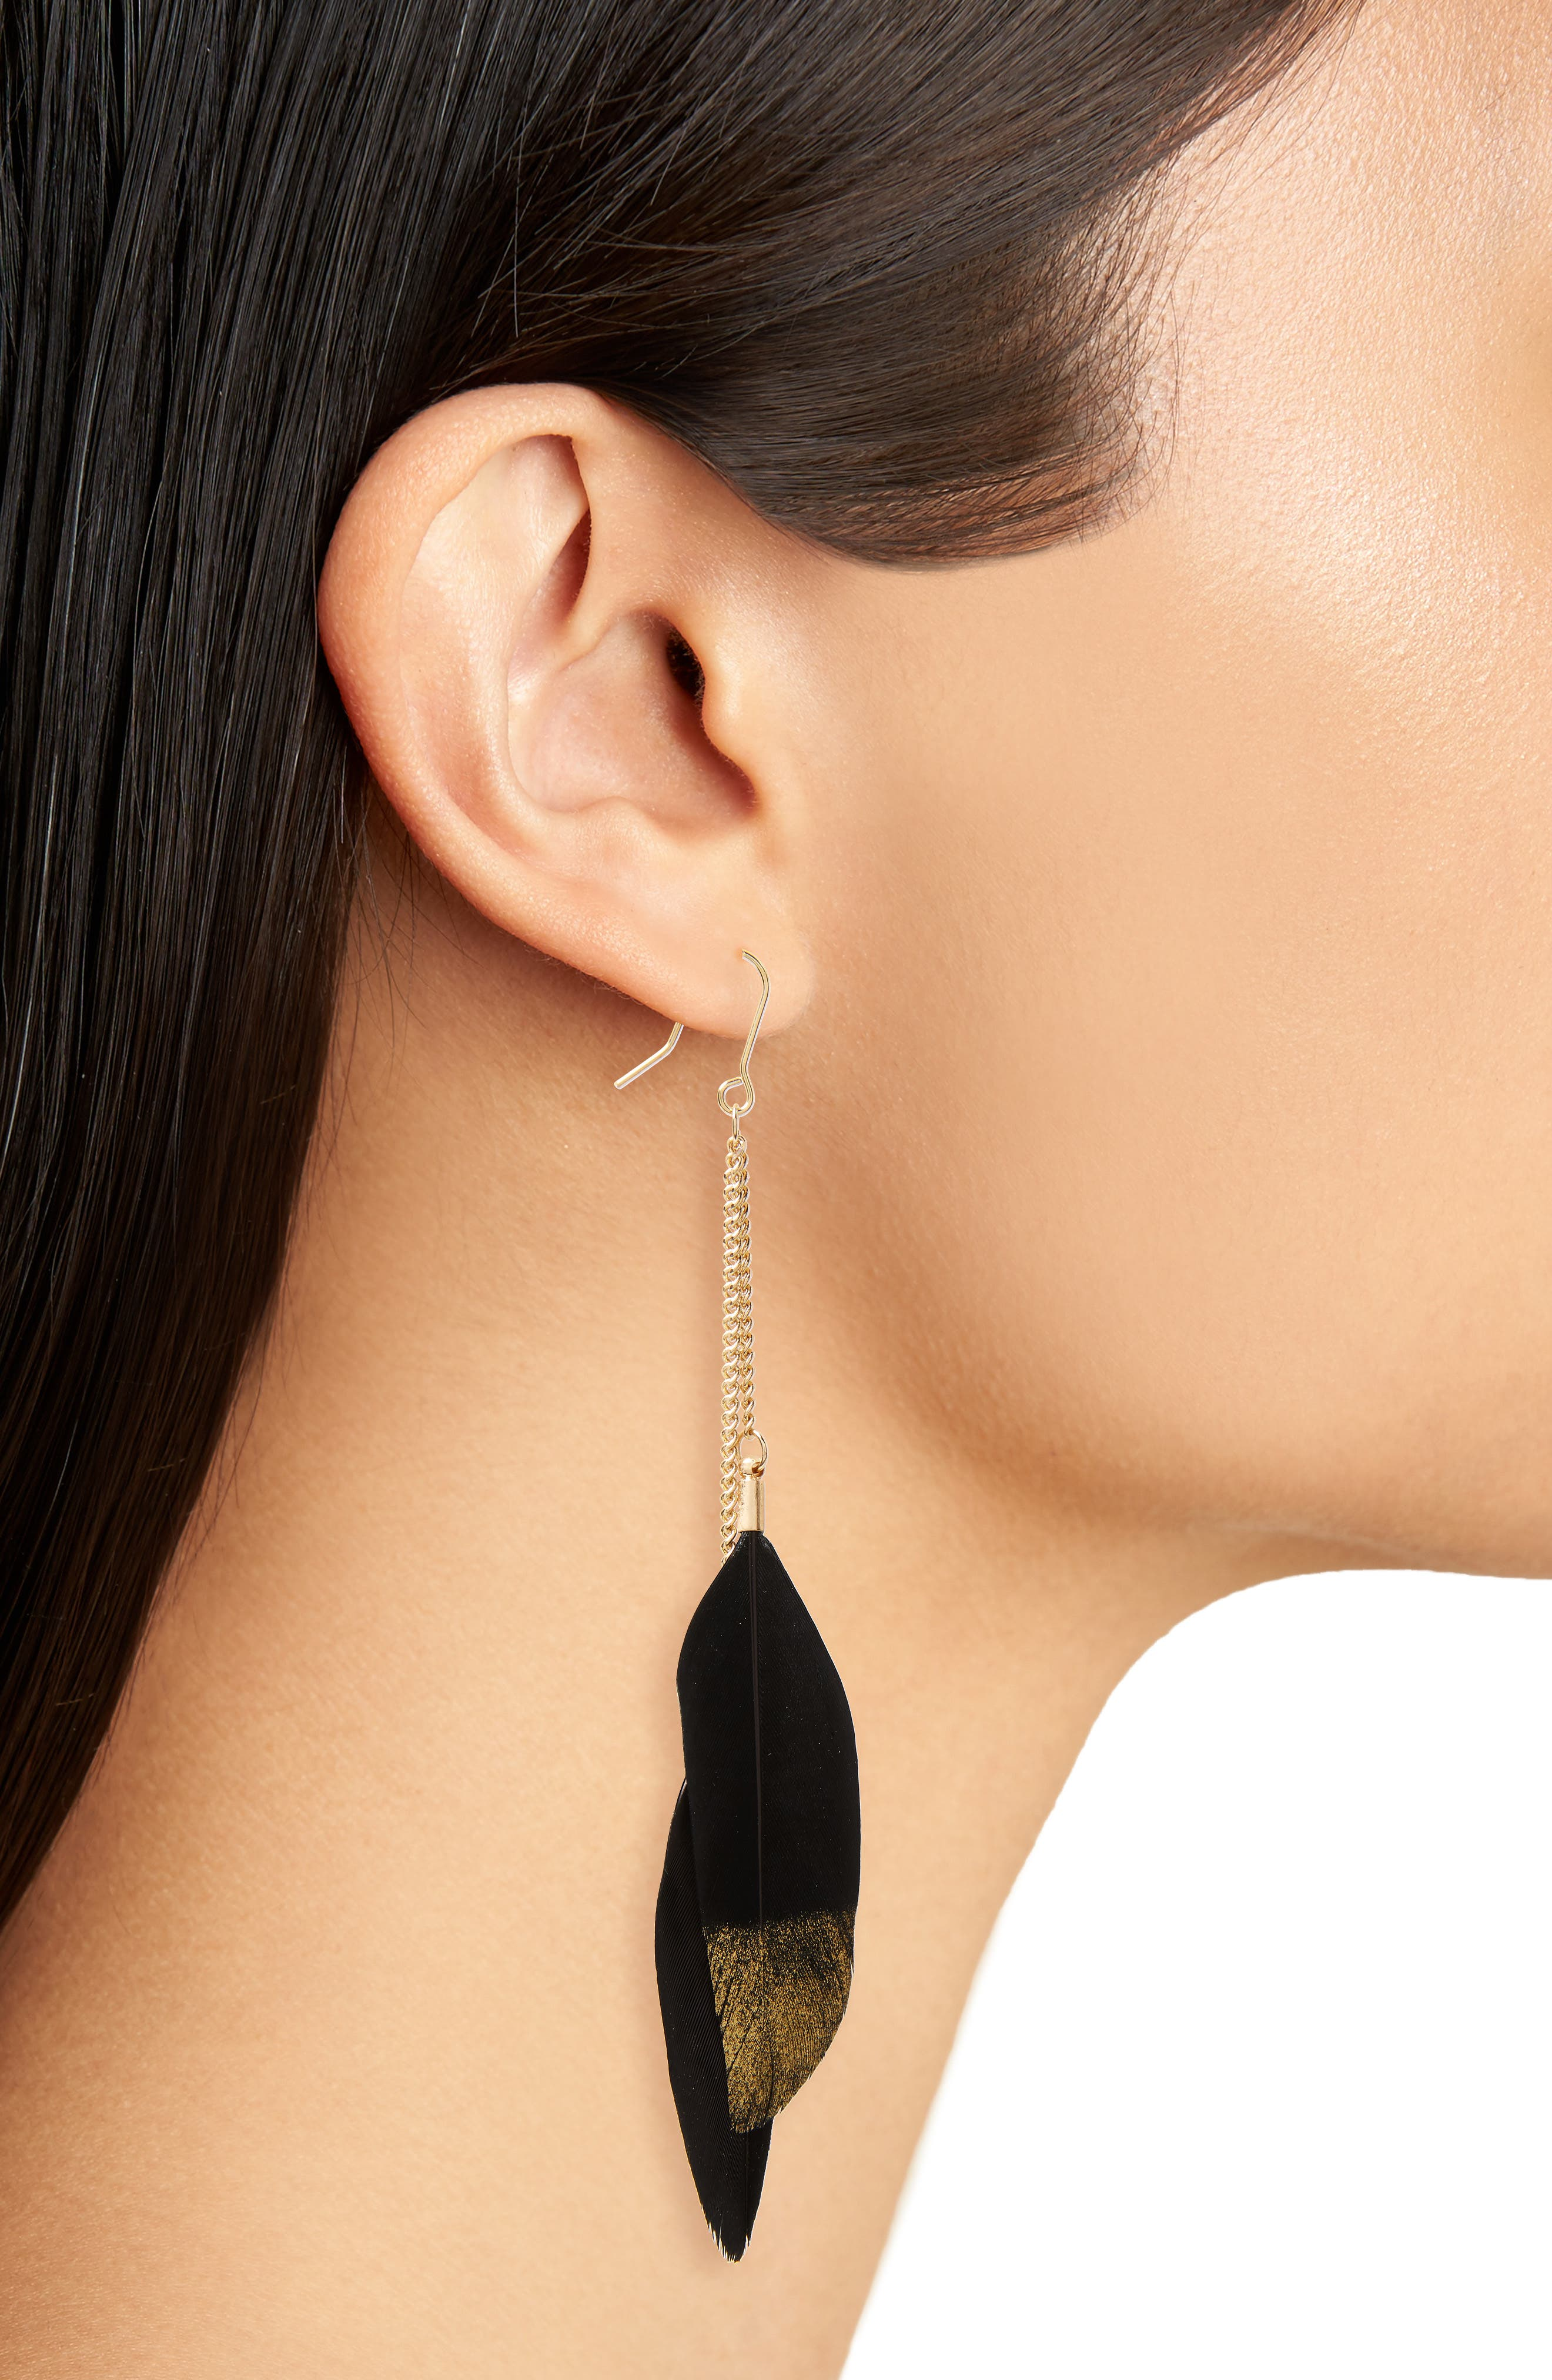 Feather Earrings,                             Alternate thumbnail 2, color,                             Black/ Gold